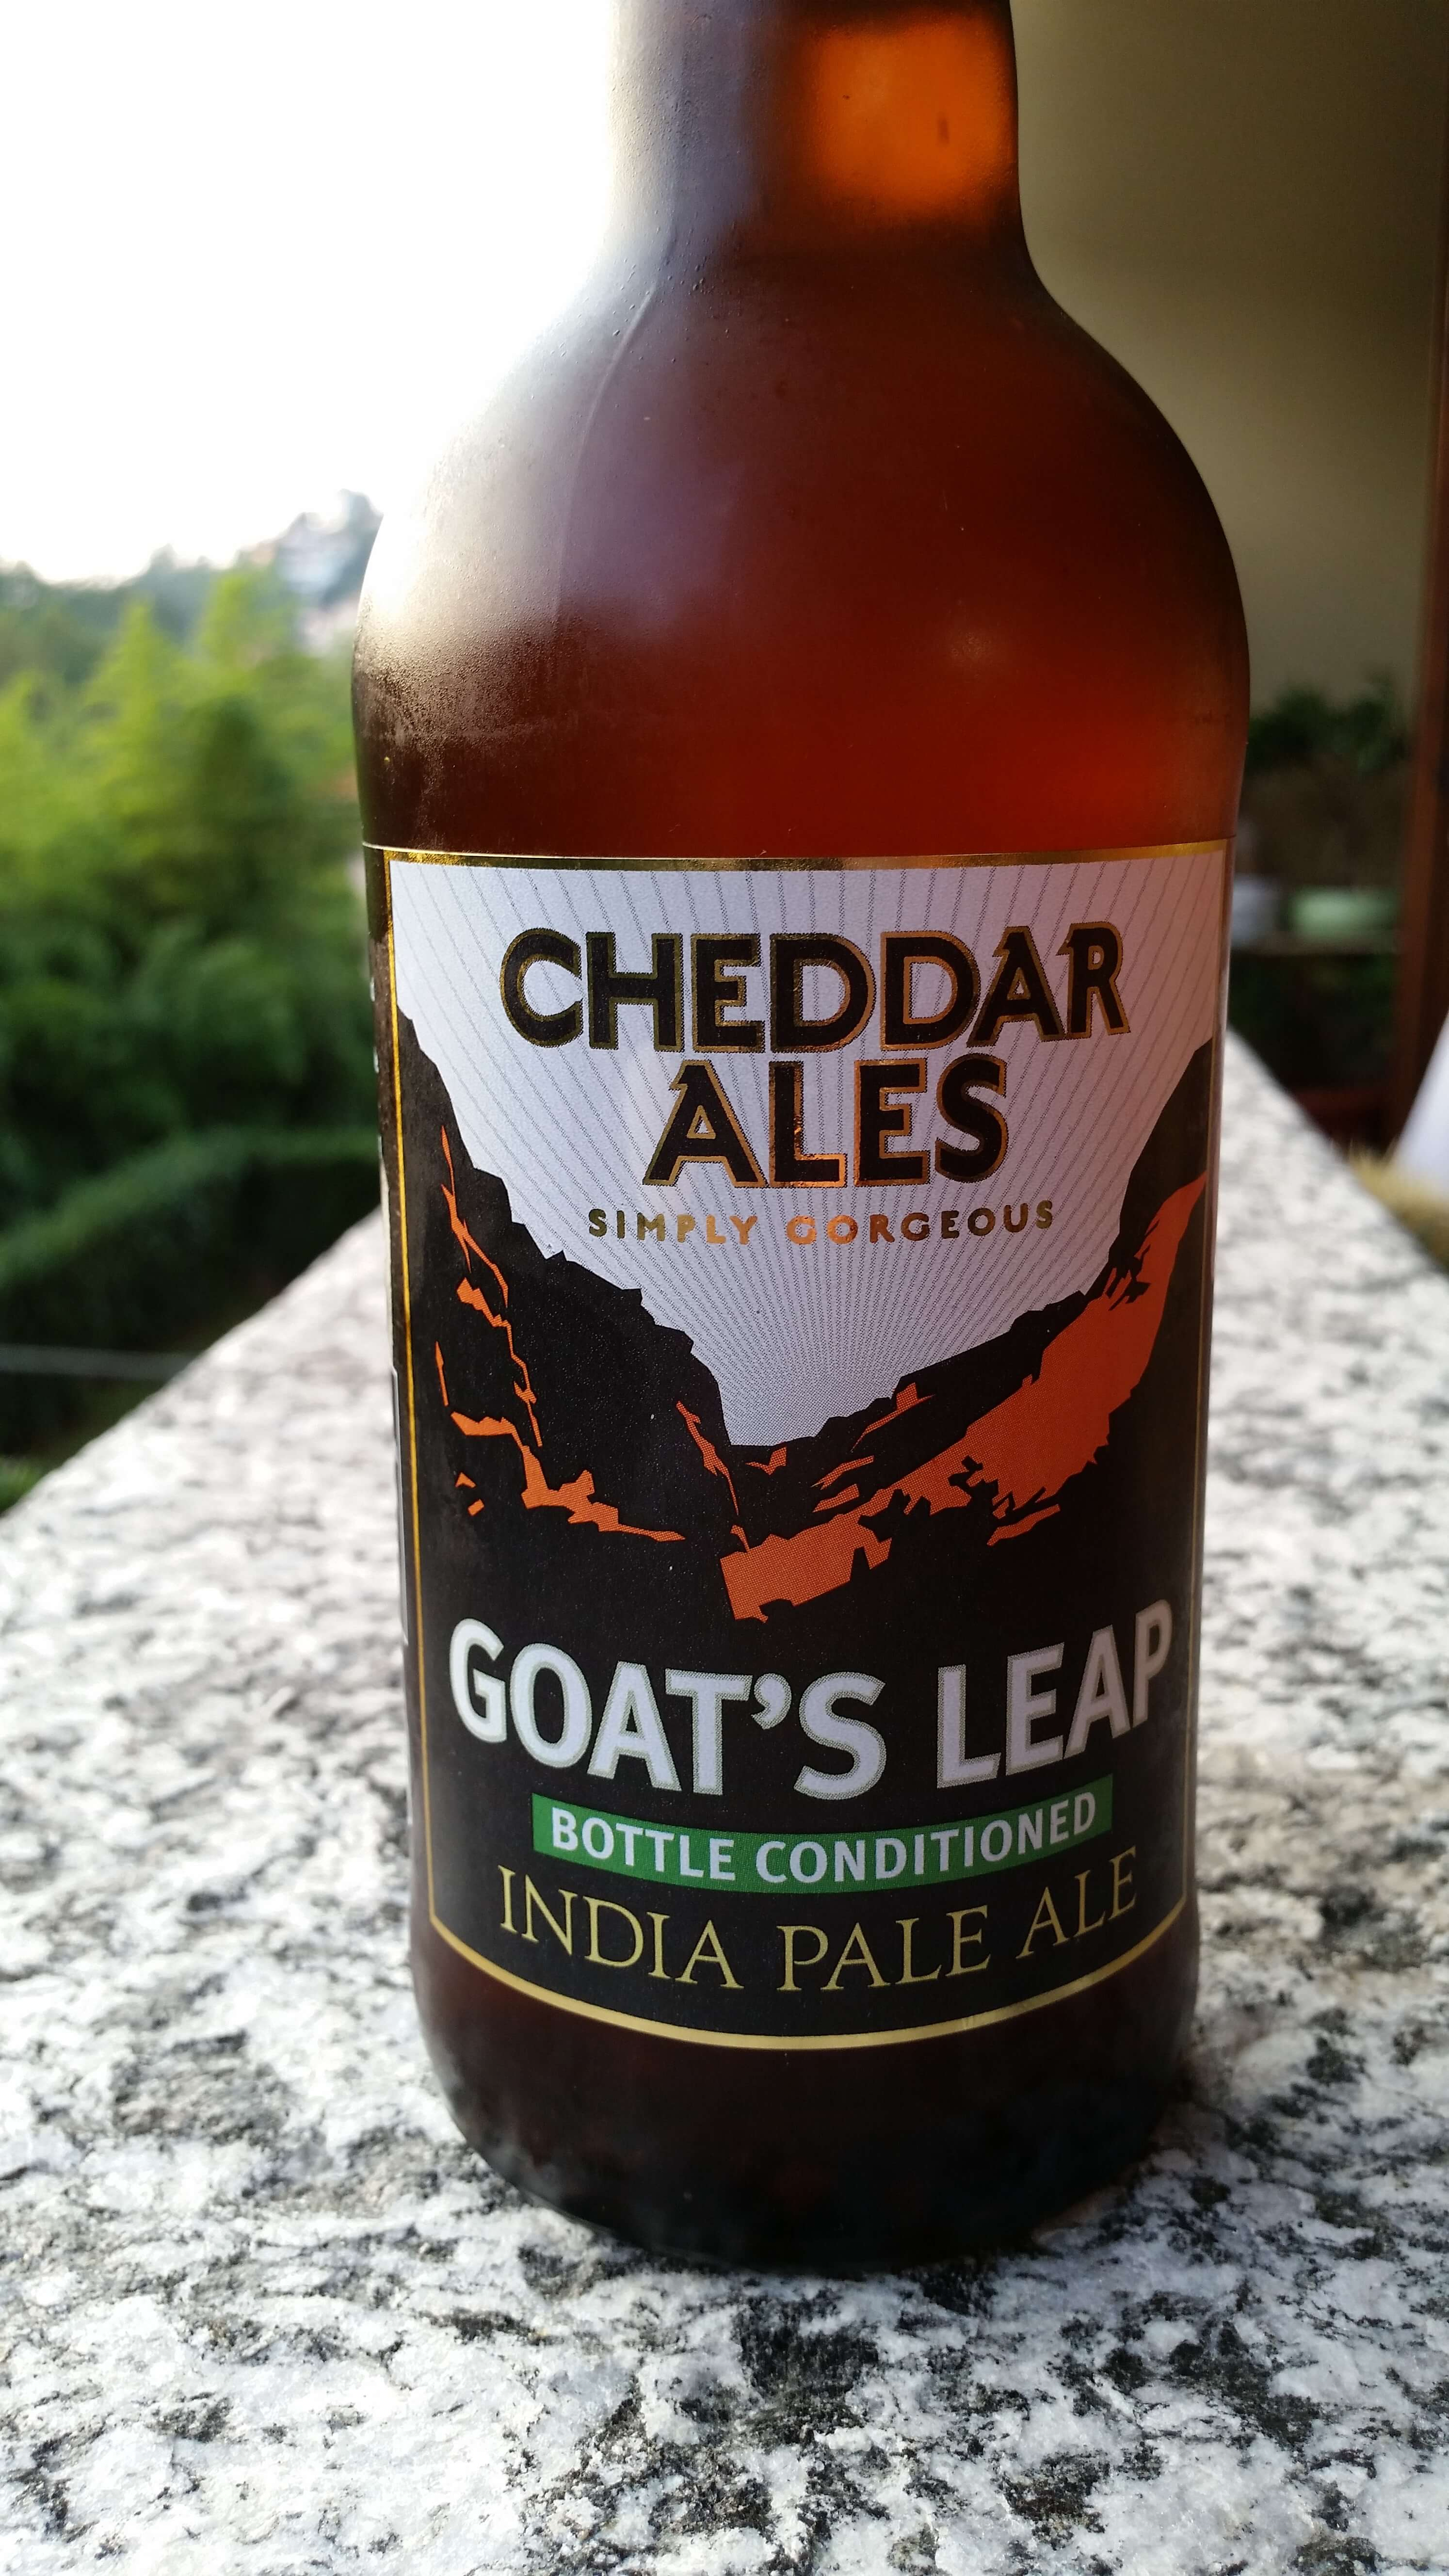 Goat's Leap IPA, Cheddar Ales